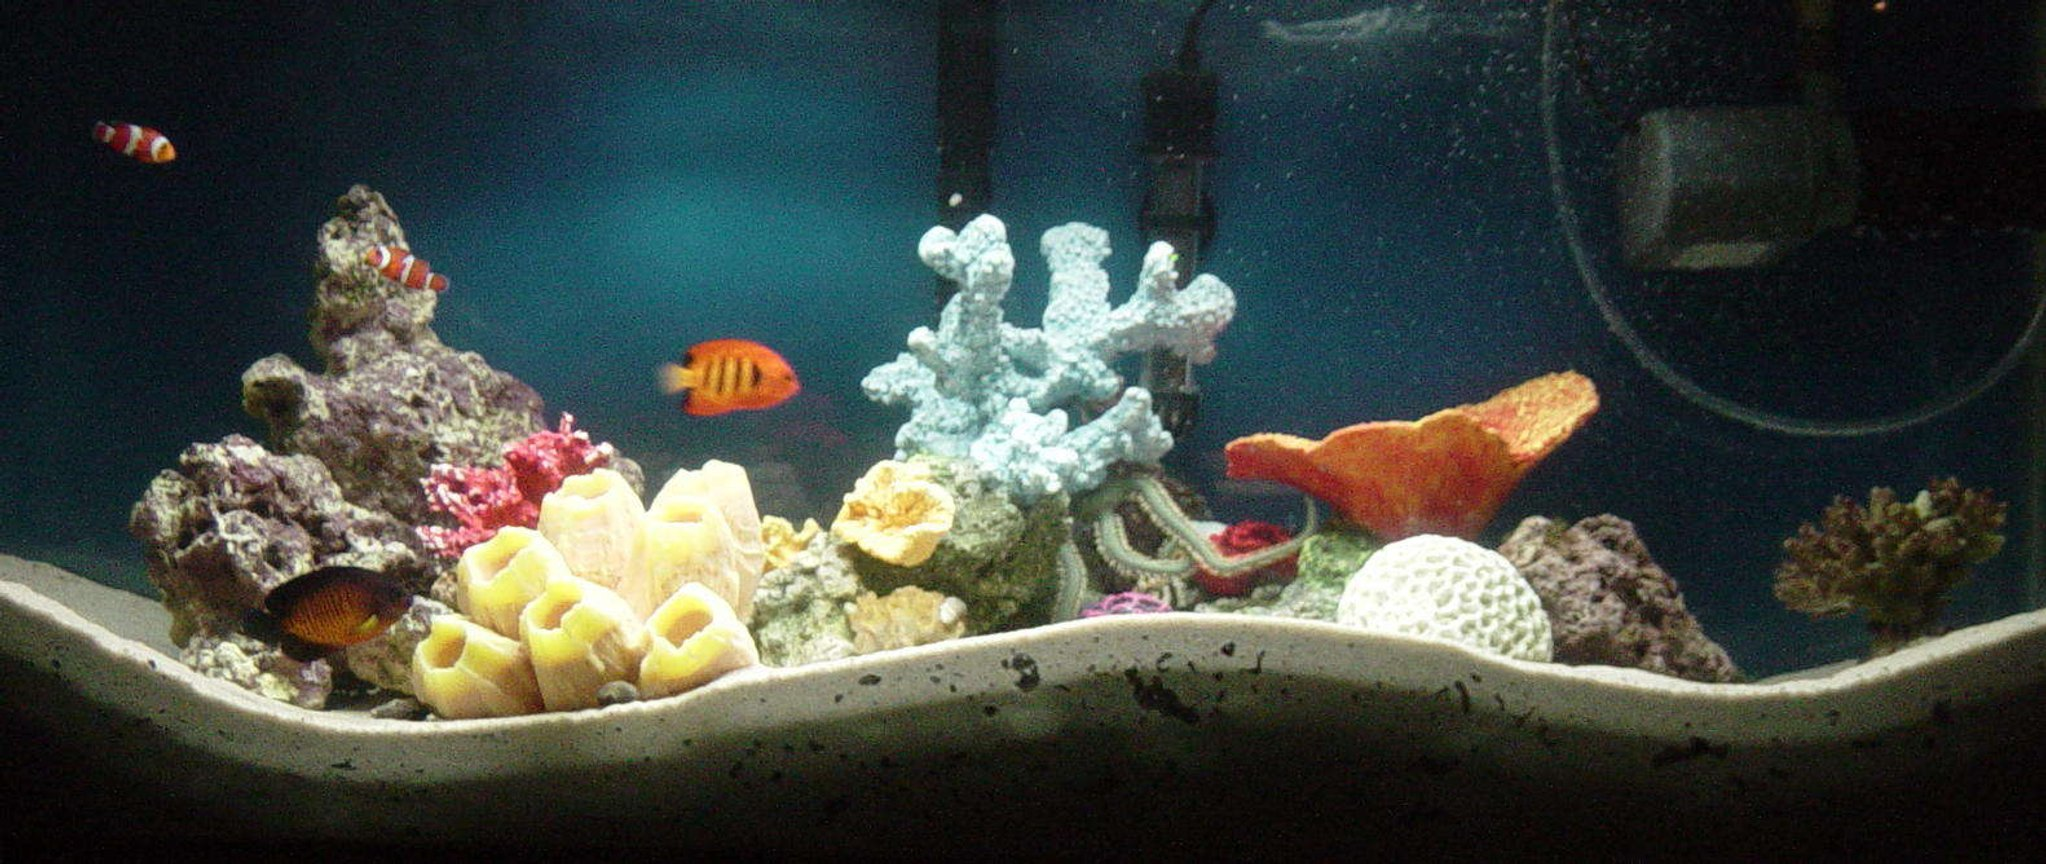 35 gallons saltwater fish tank (mostly fish, little/no live coral) - my 35 gallon fish only with live rock